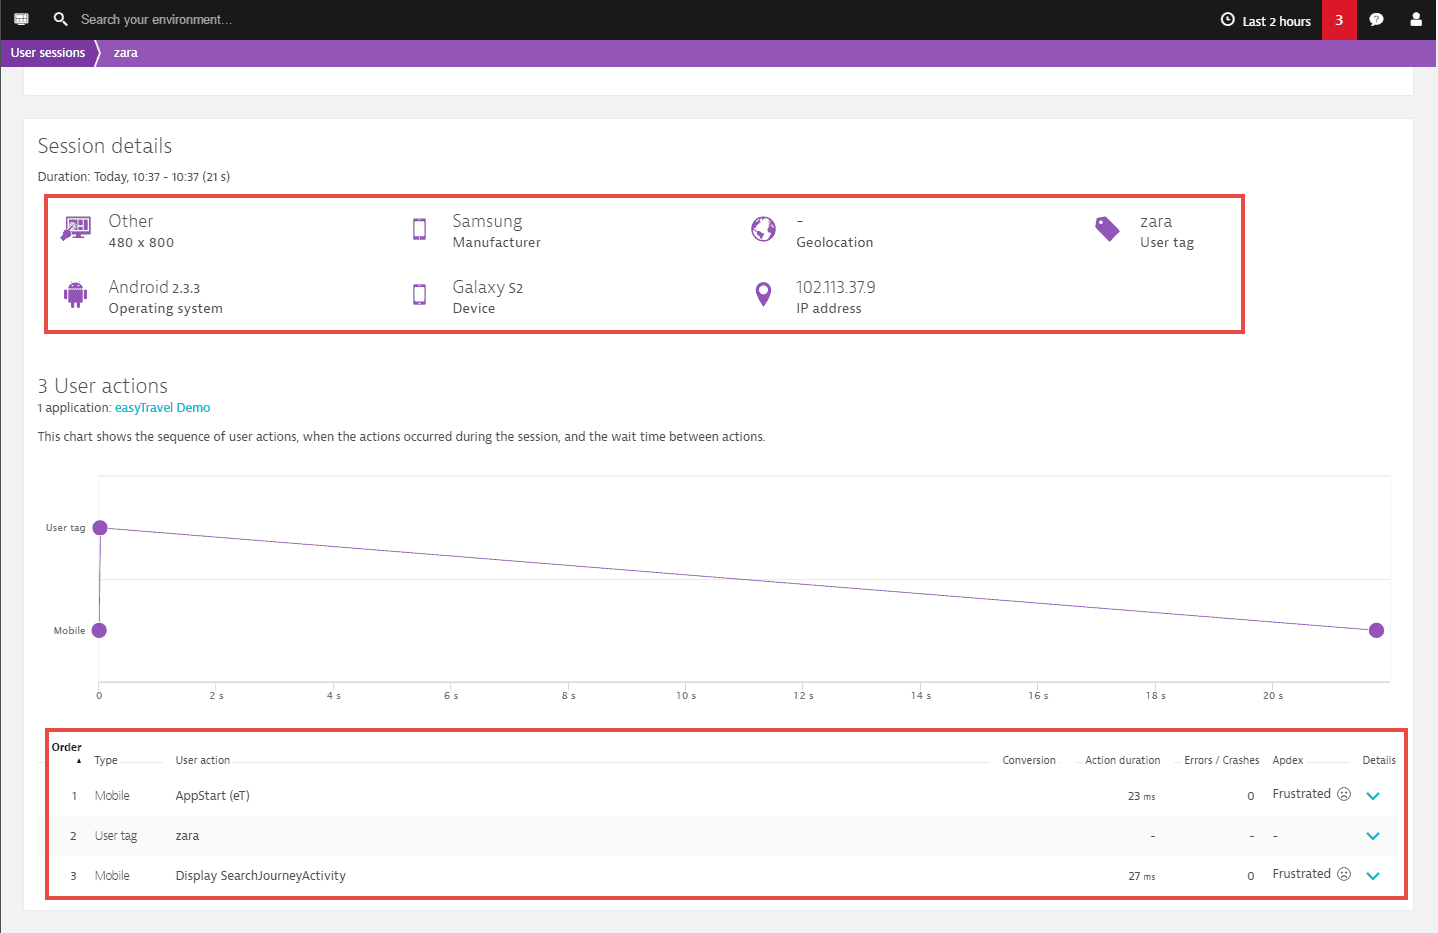 User session details page